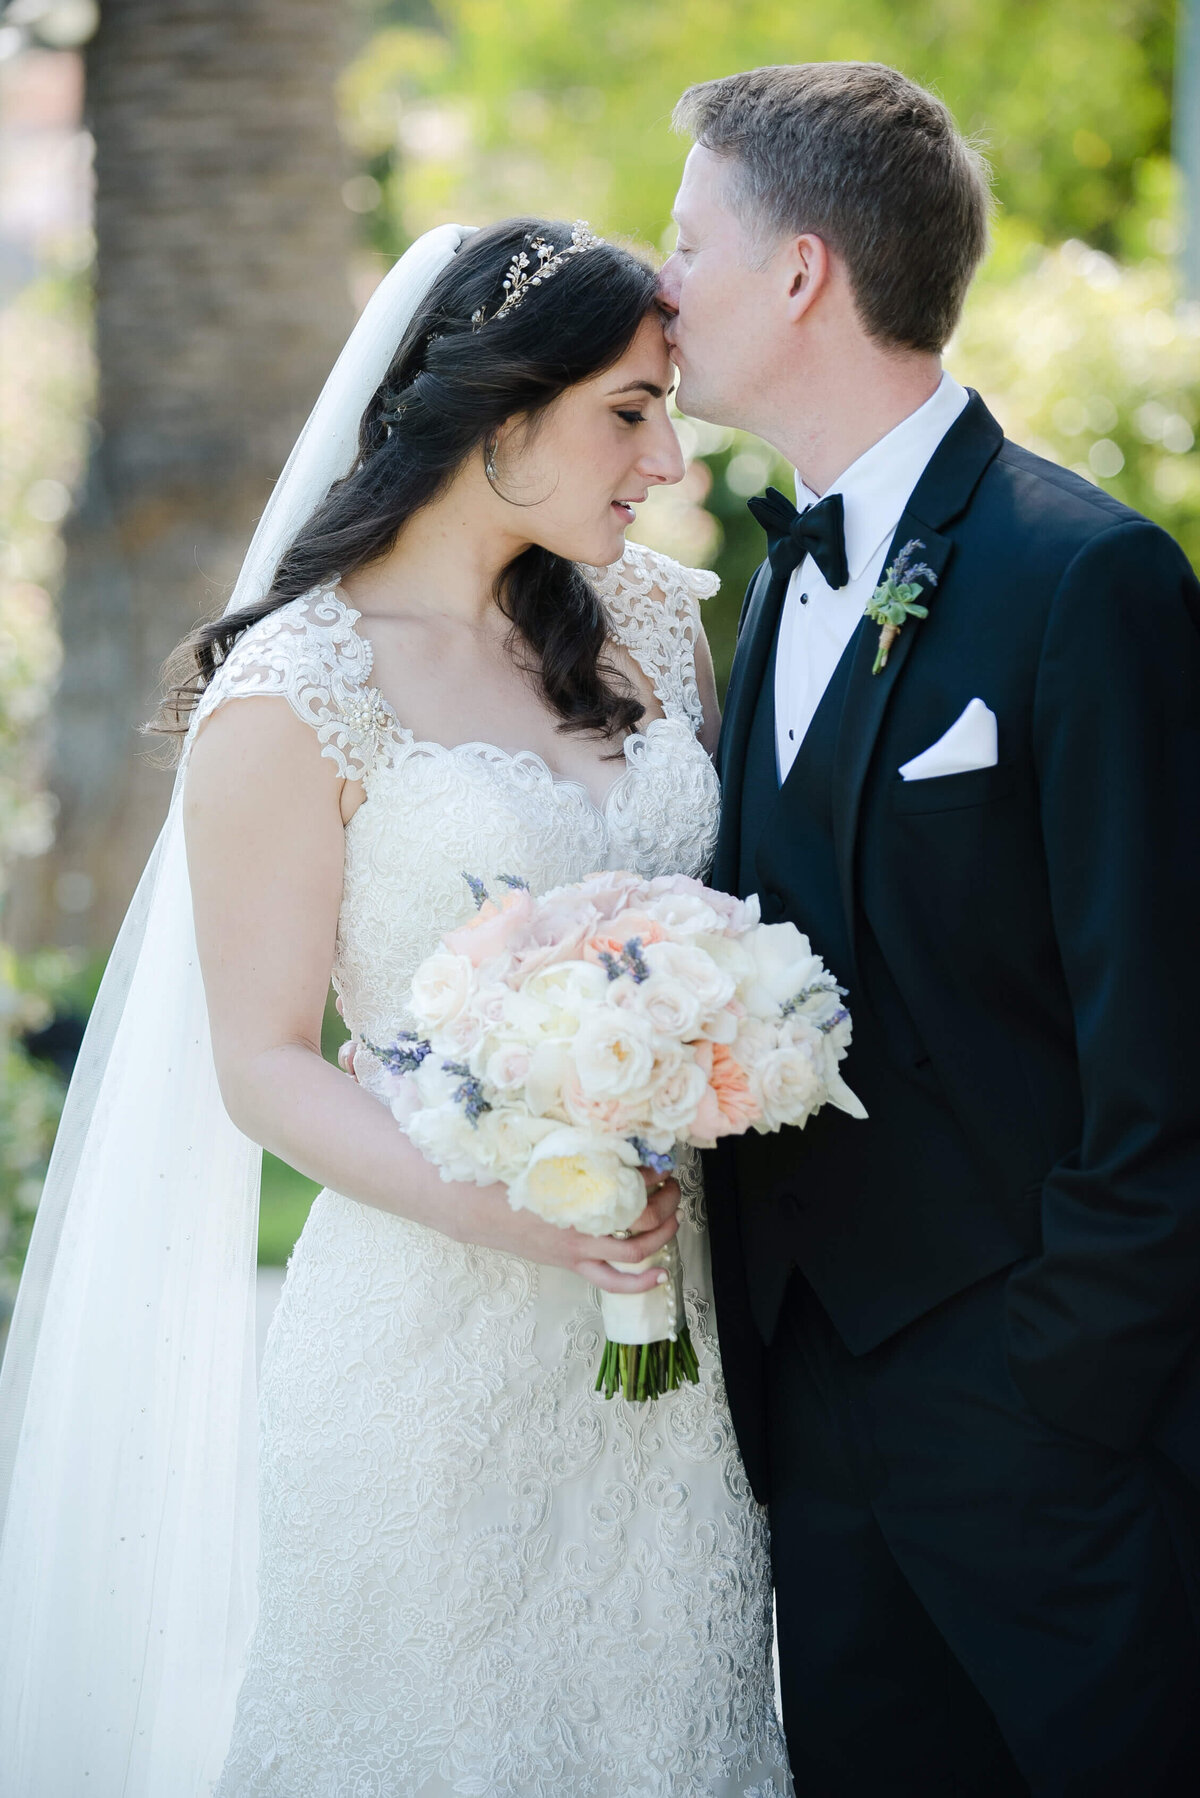 Bel air bay club wedding pacific palisades wedding by Karina Pires Photography